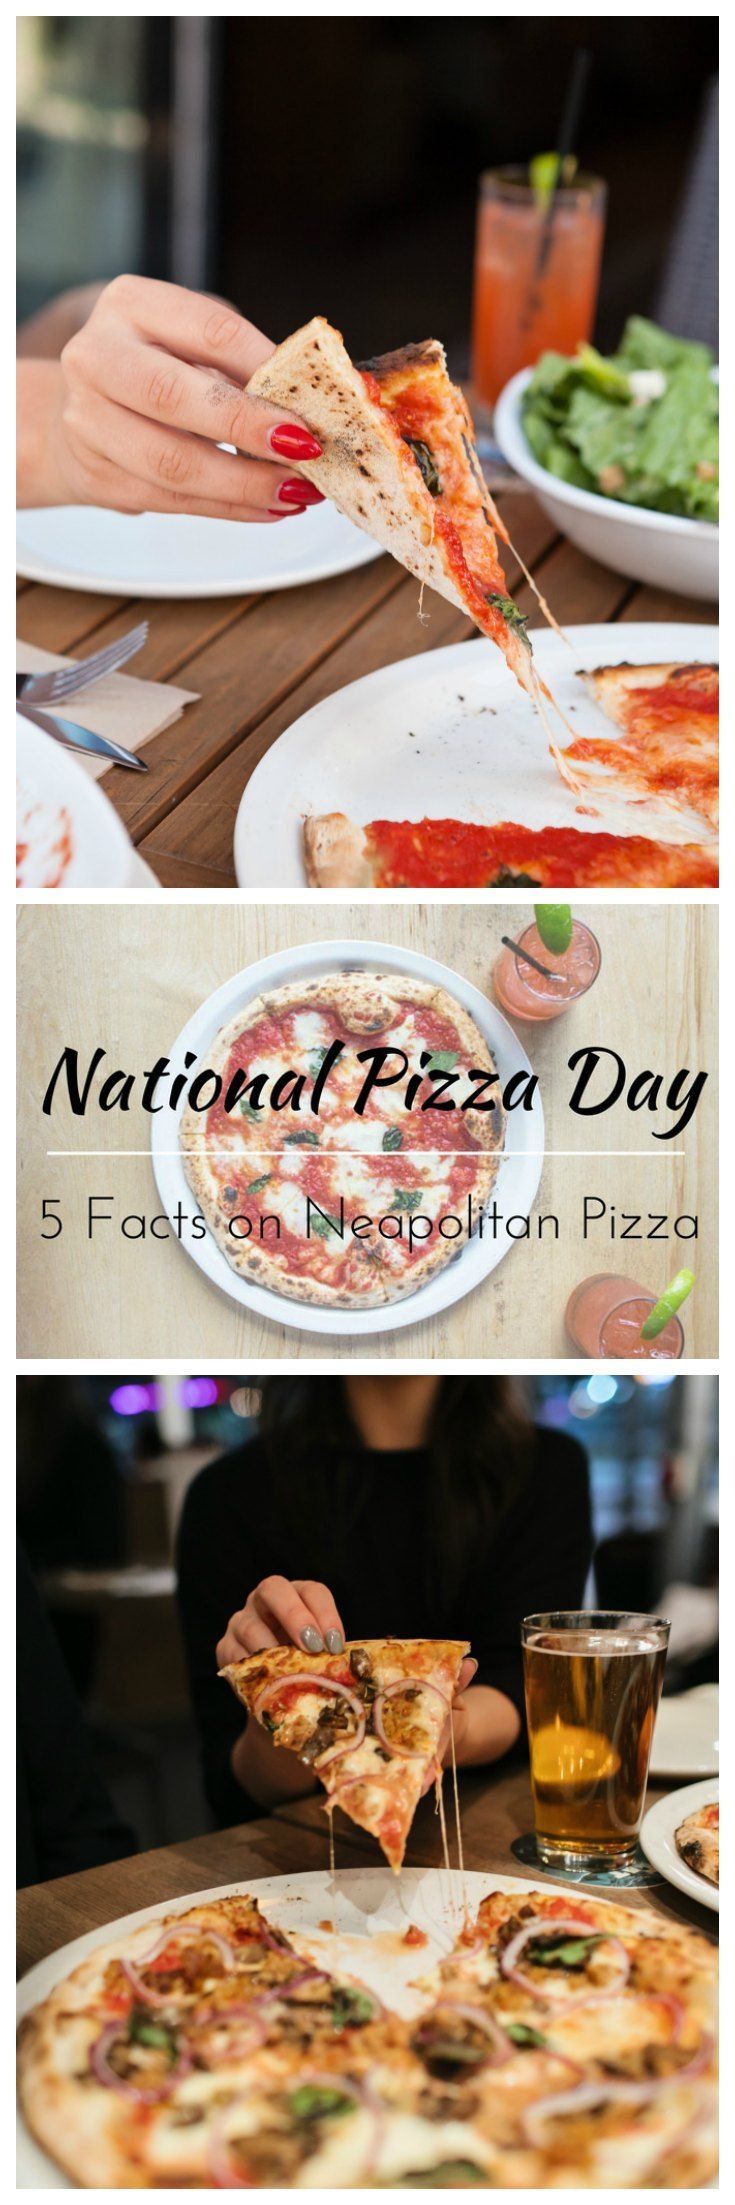 Did you know that February 9 is National Pizza Day?  Click to find out some fun facts on Neapolitan Pizza.  #NationalPizzaDay #PizzaDay